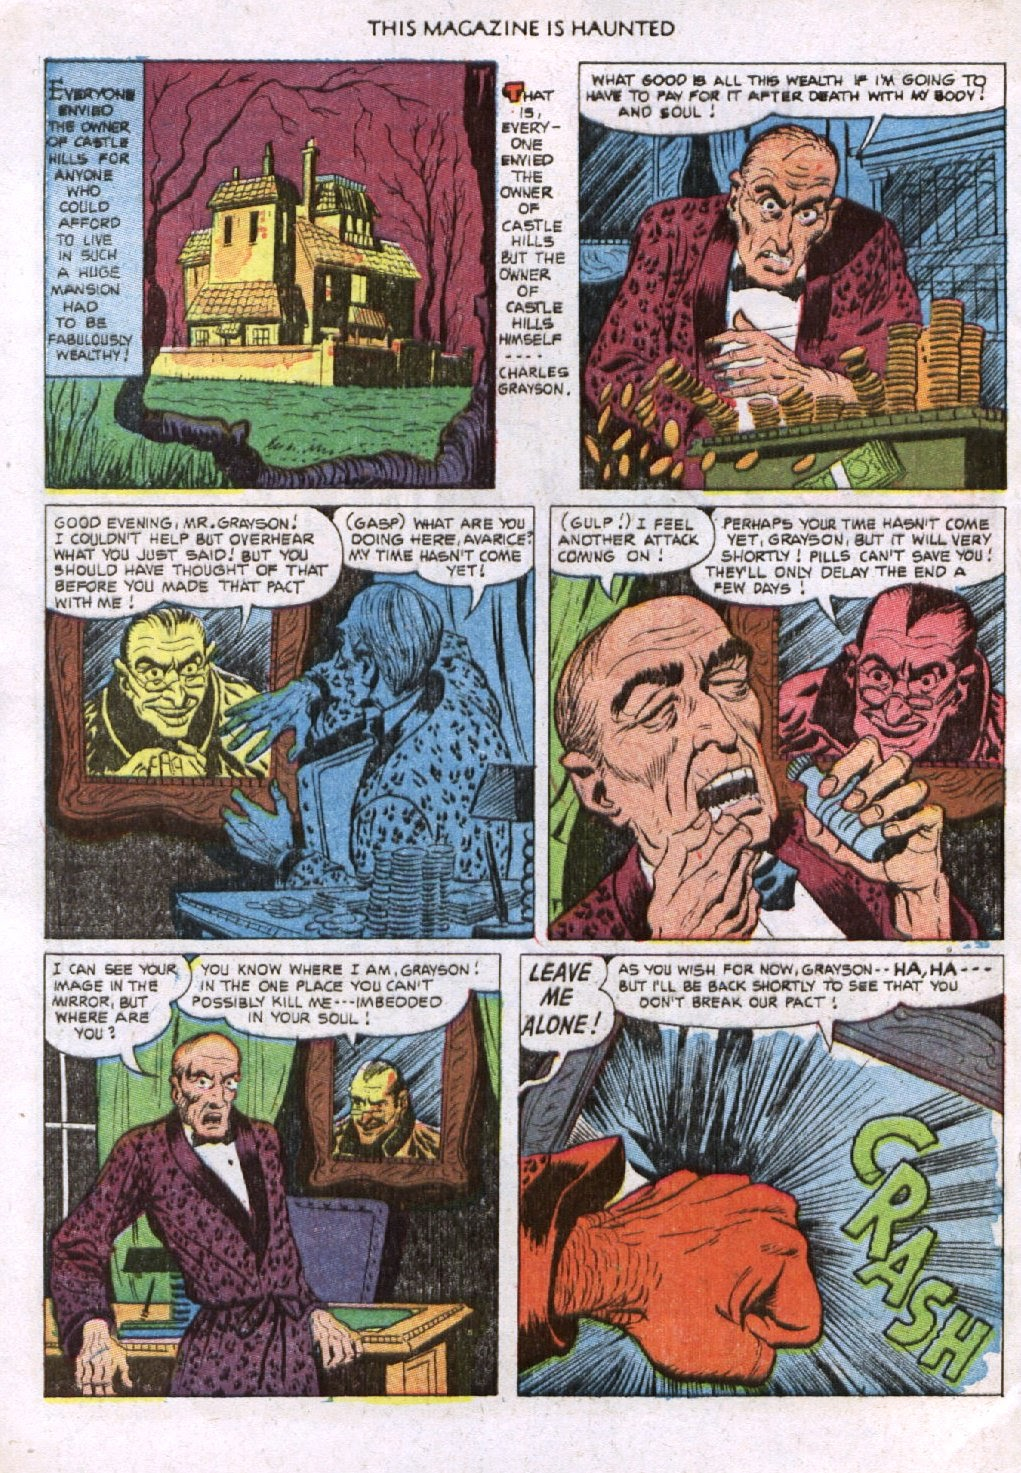 Read online This Magazine Is Haunted comic -  Issue #8 - 4